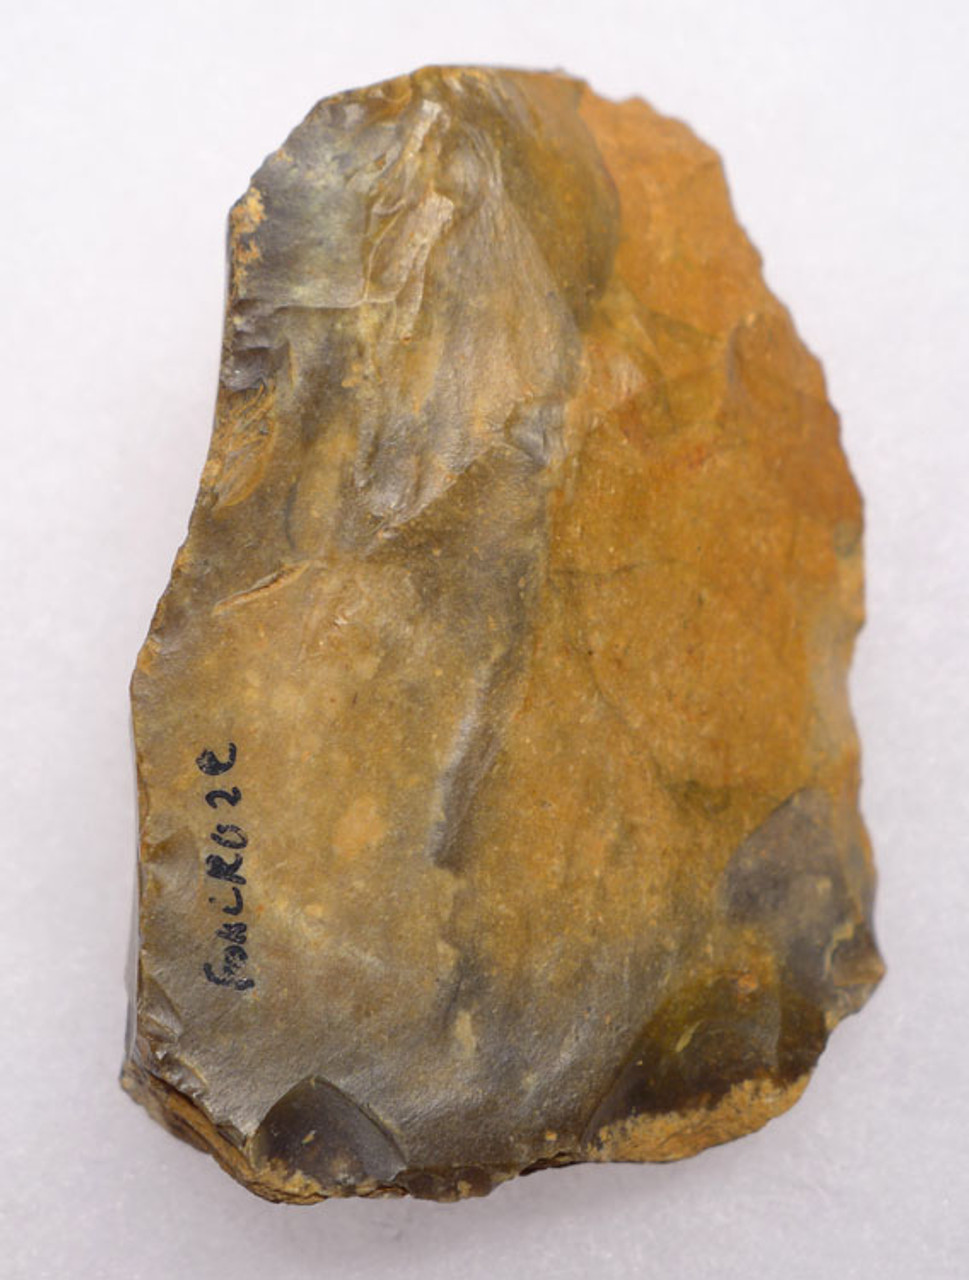 M307 - BEAUTIFUL NEANDERTHAL MOUSTERIAN FLINT TOOL CORE OPEN AREA SITE IN FRANCE